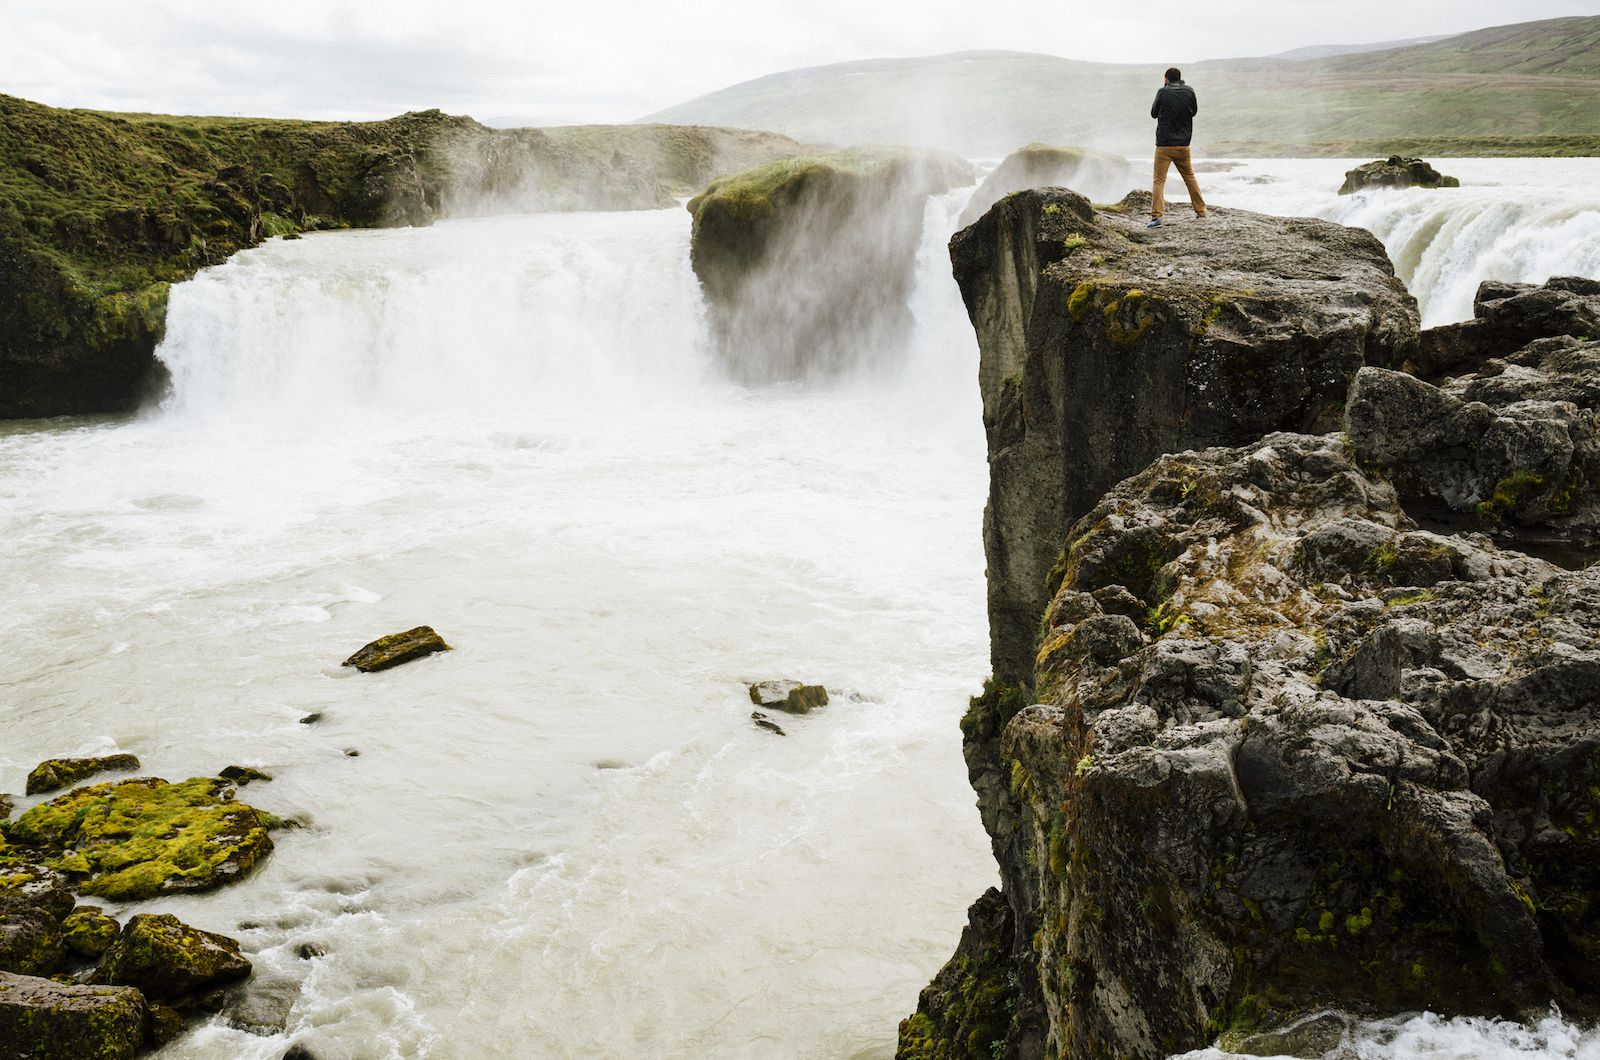 man overlooking a waterfall from a nearby cliff